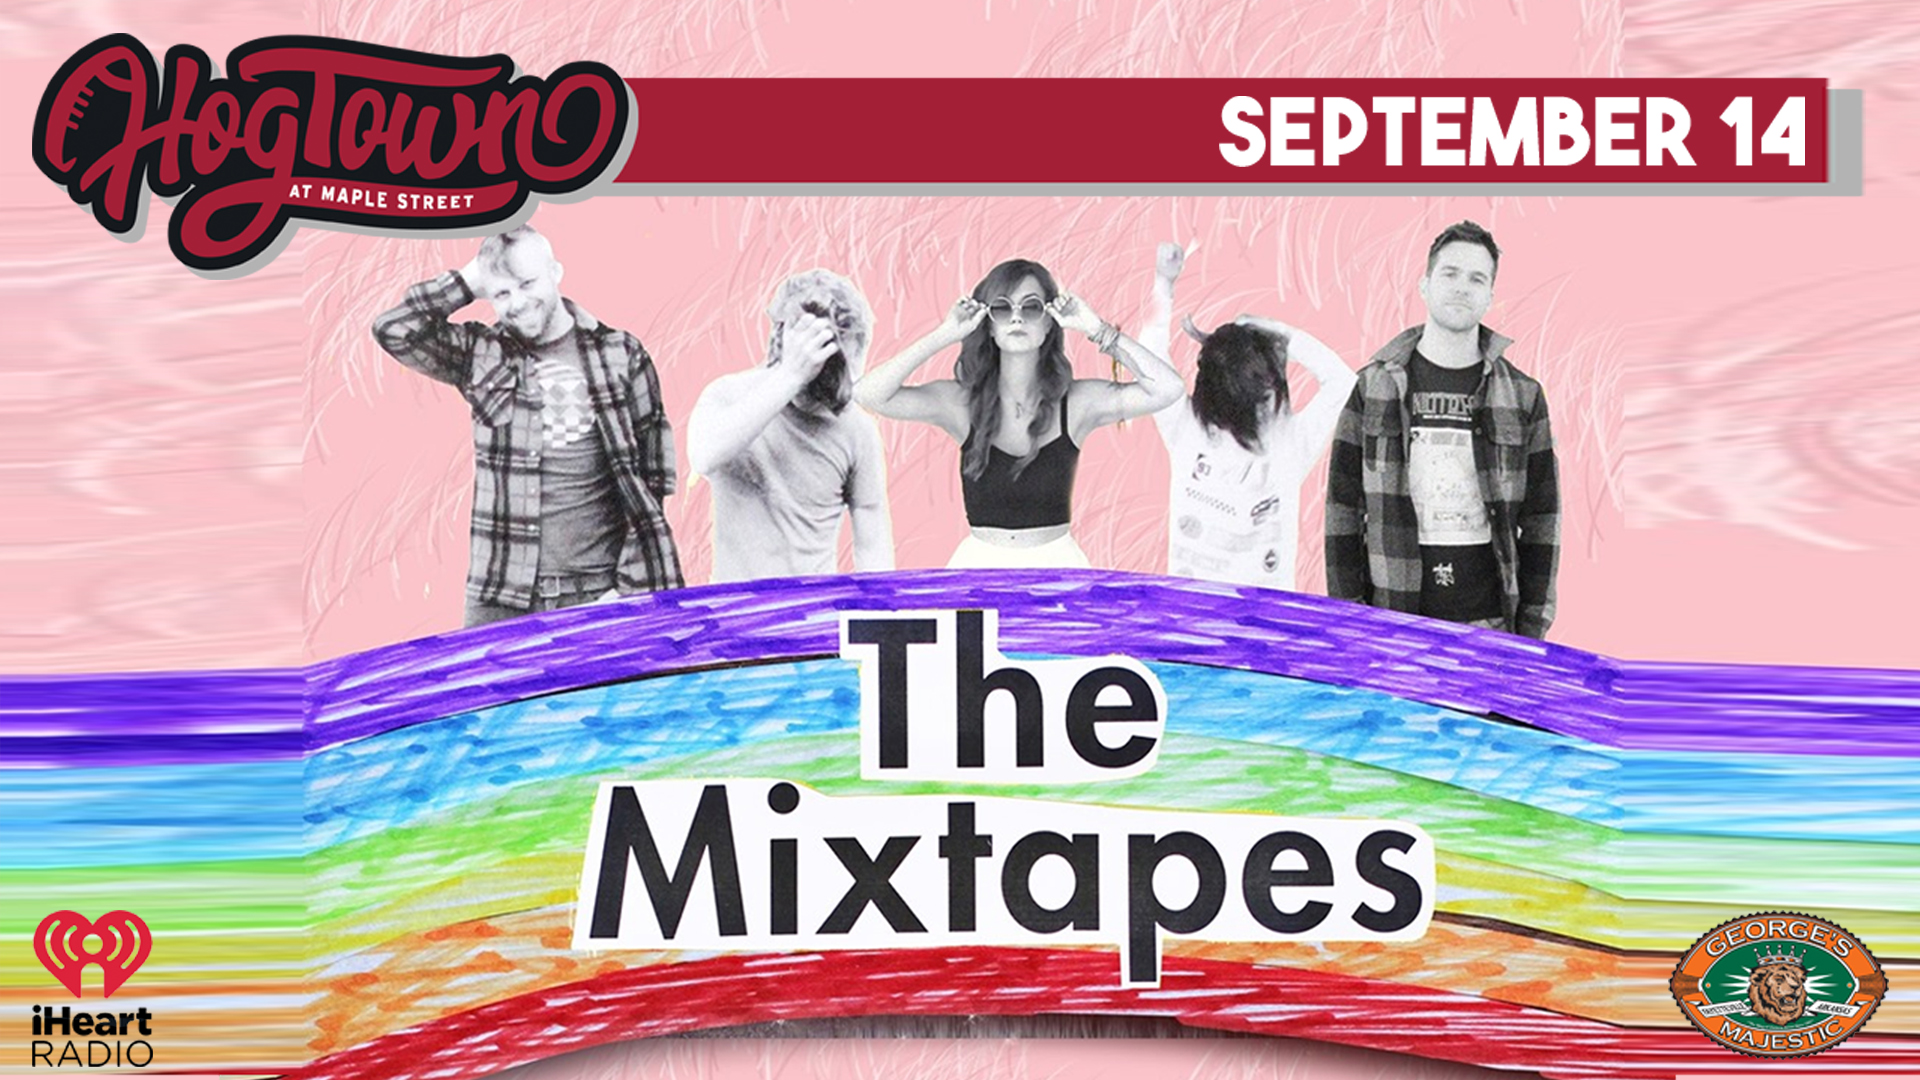 The Mixtapes to Perform Live in HogTown on Saturday